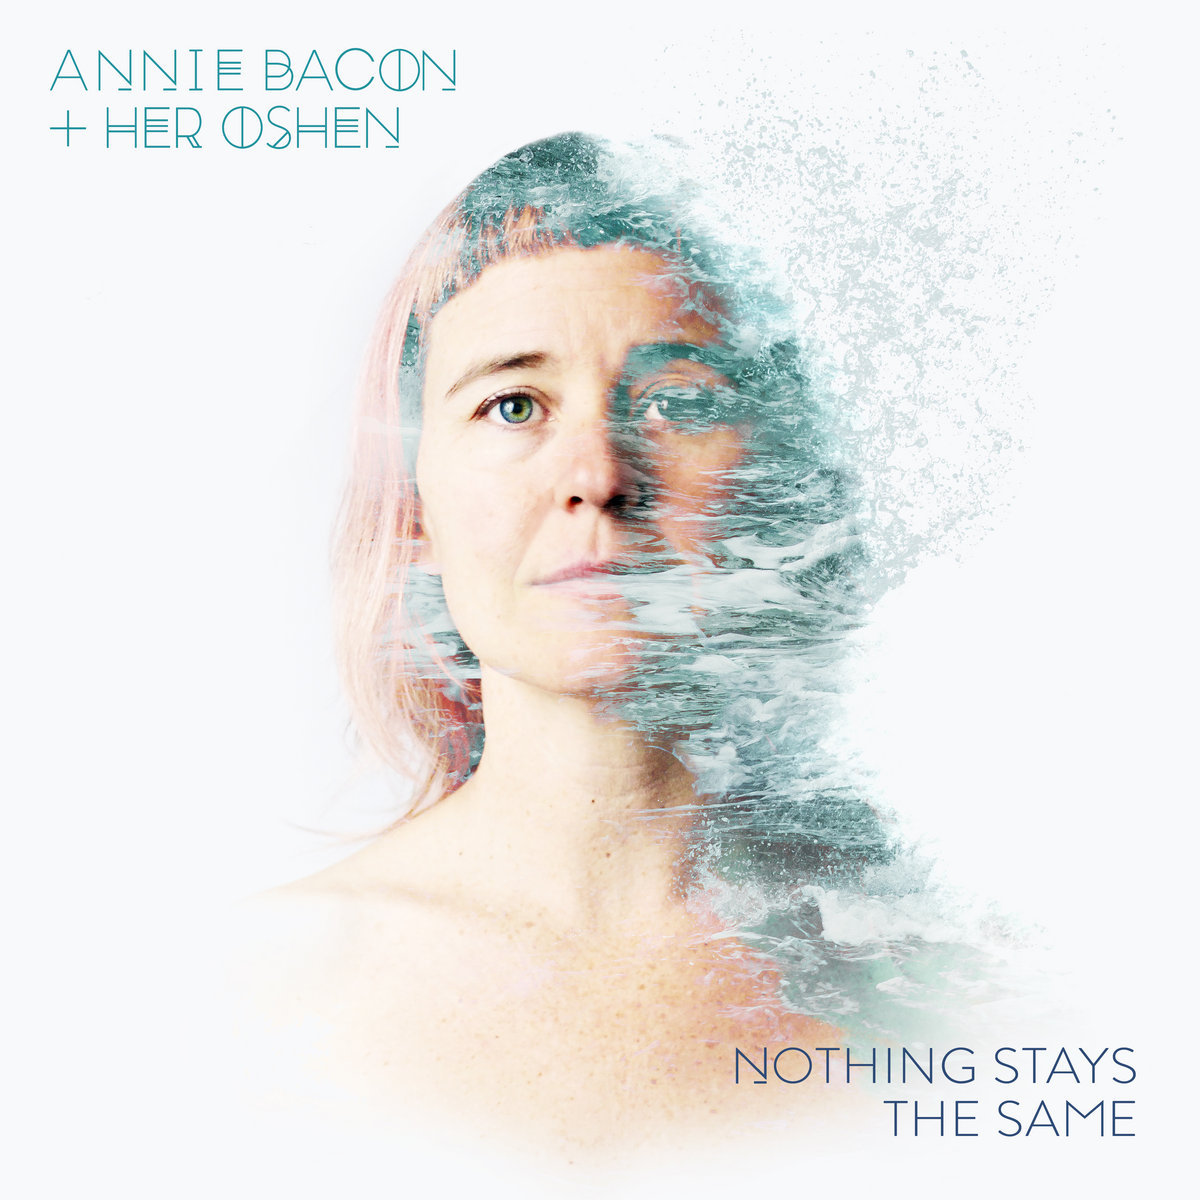 Nothing stays the same | annie bacon & her OSHEN